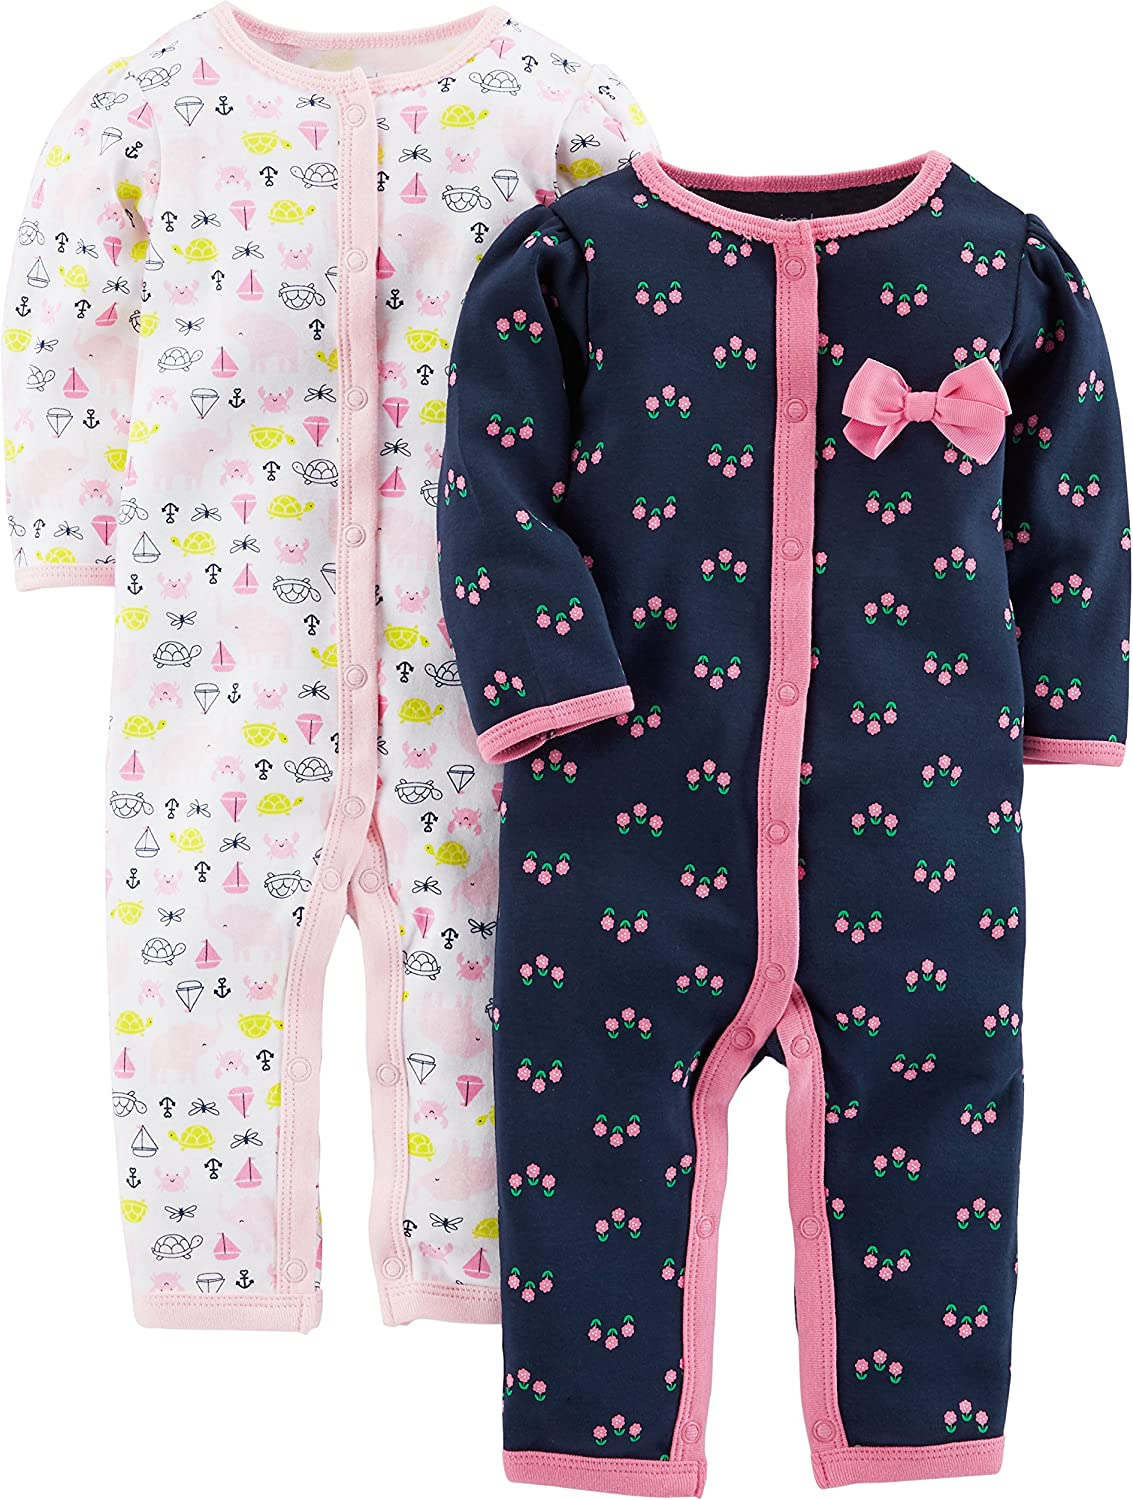 Simple Joys by Carters Baby Girls 2-Pack Fleece Footed Sleep and Play Pack of 2